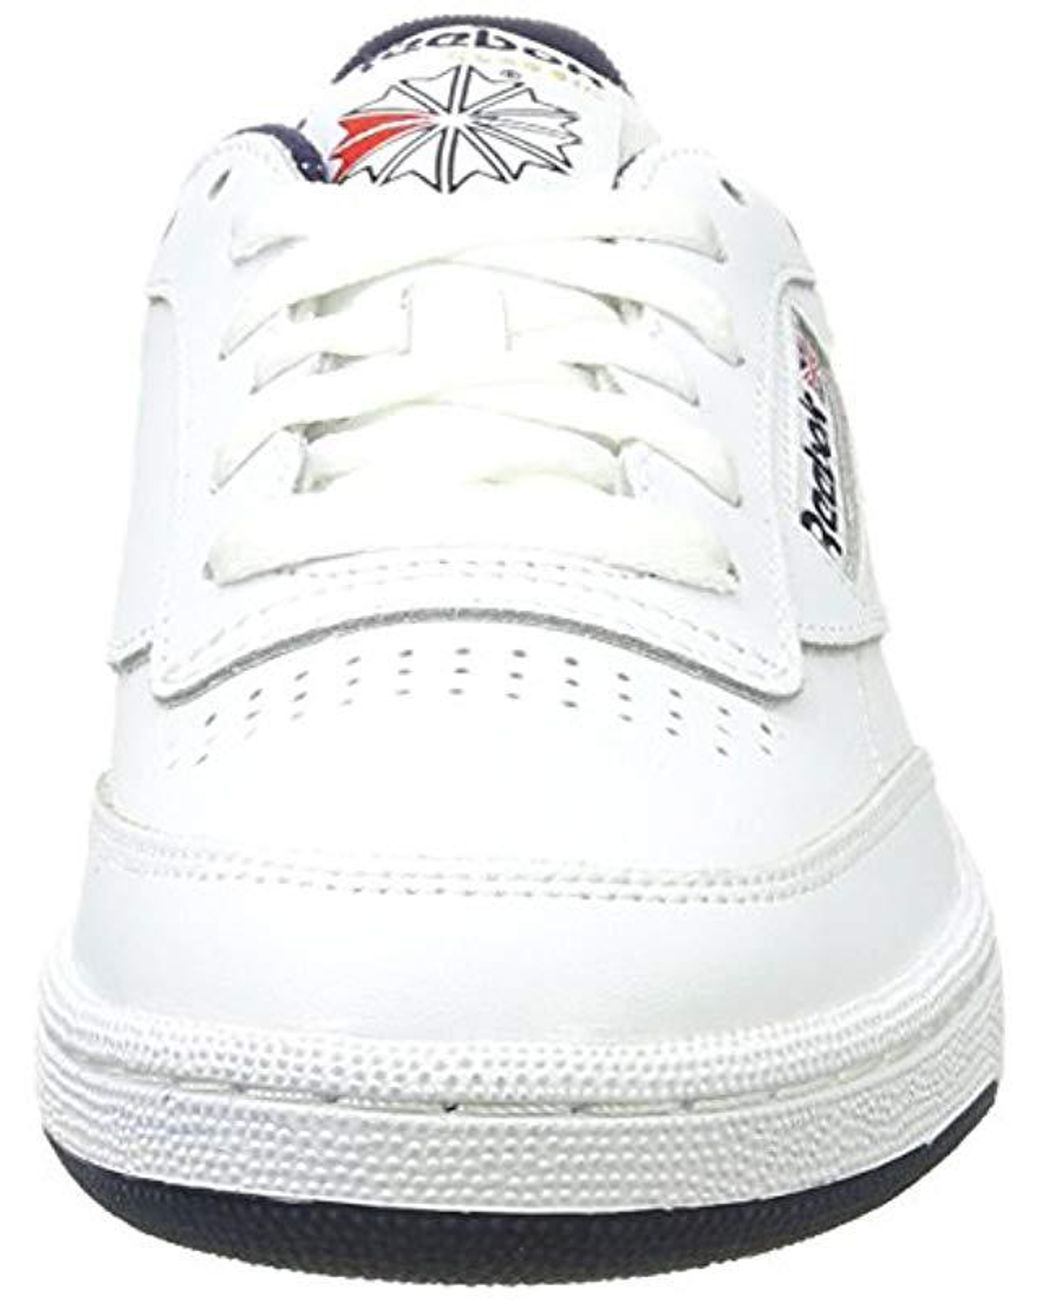 Save Men Club 21Lyst For White 85 C Shoes In Gymnastics Reebok 9WEHYebID2